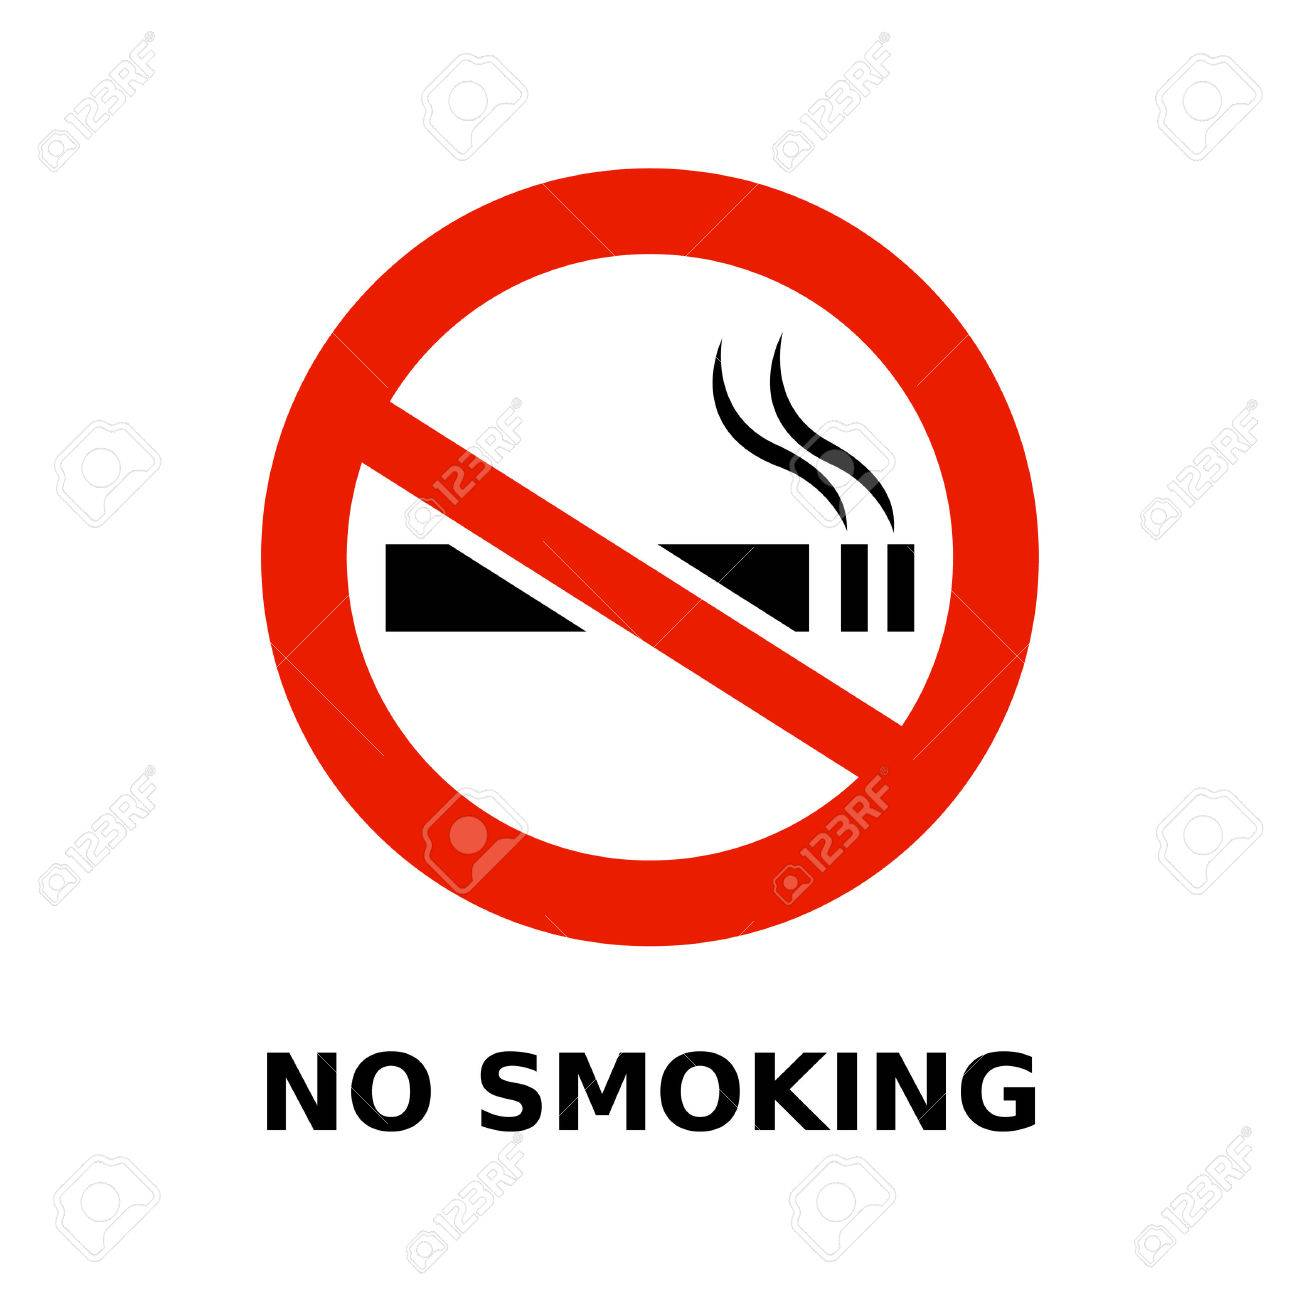 No smoking symbol and text on white background royalty free cliparts no smoking symbol and text on white background stock vector 25127692 buycottarizona Images